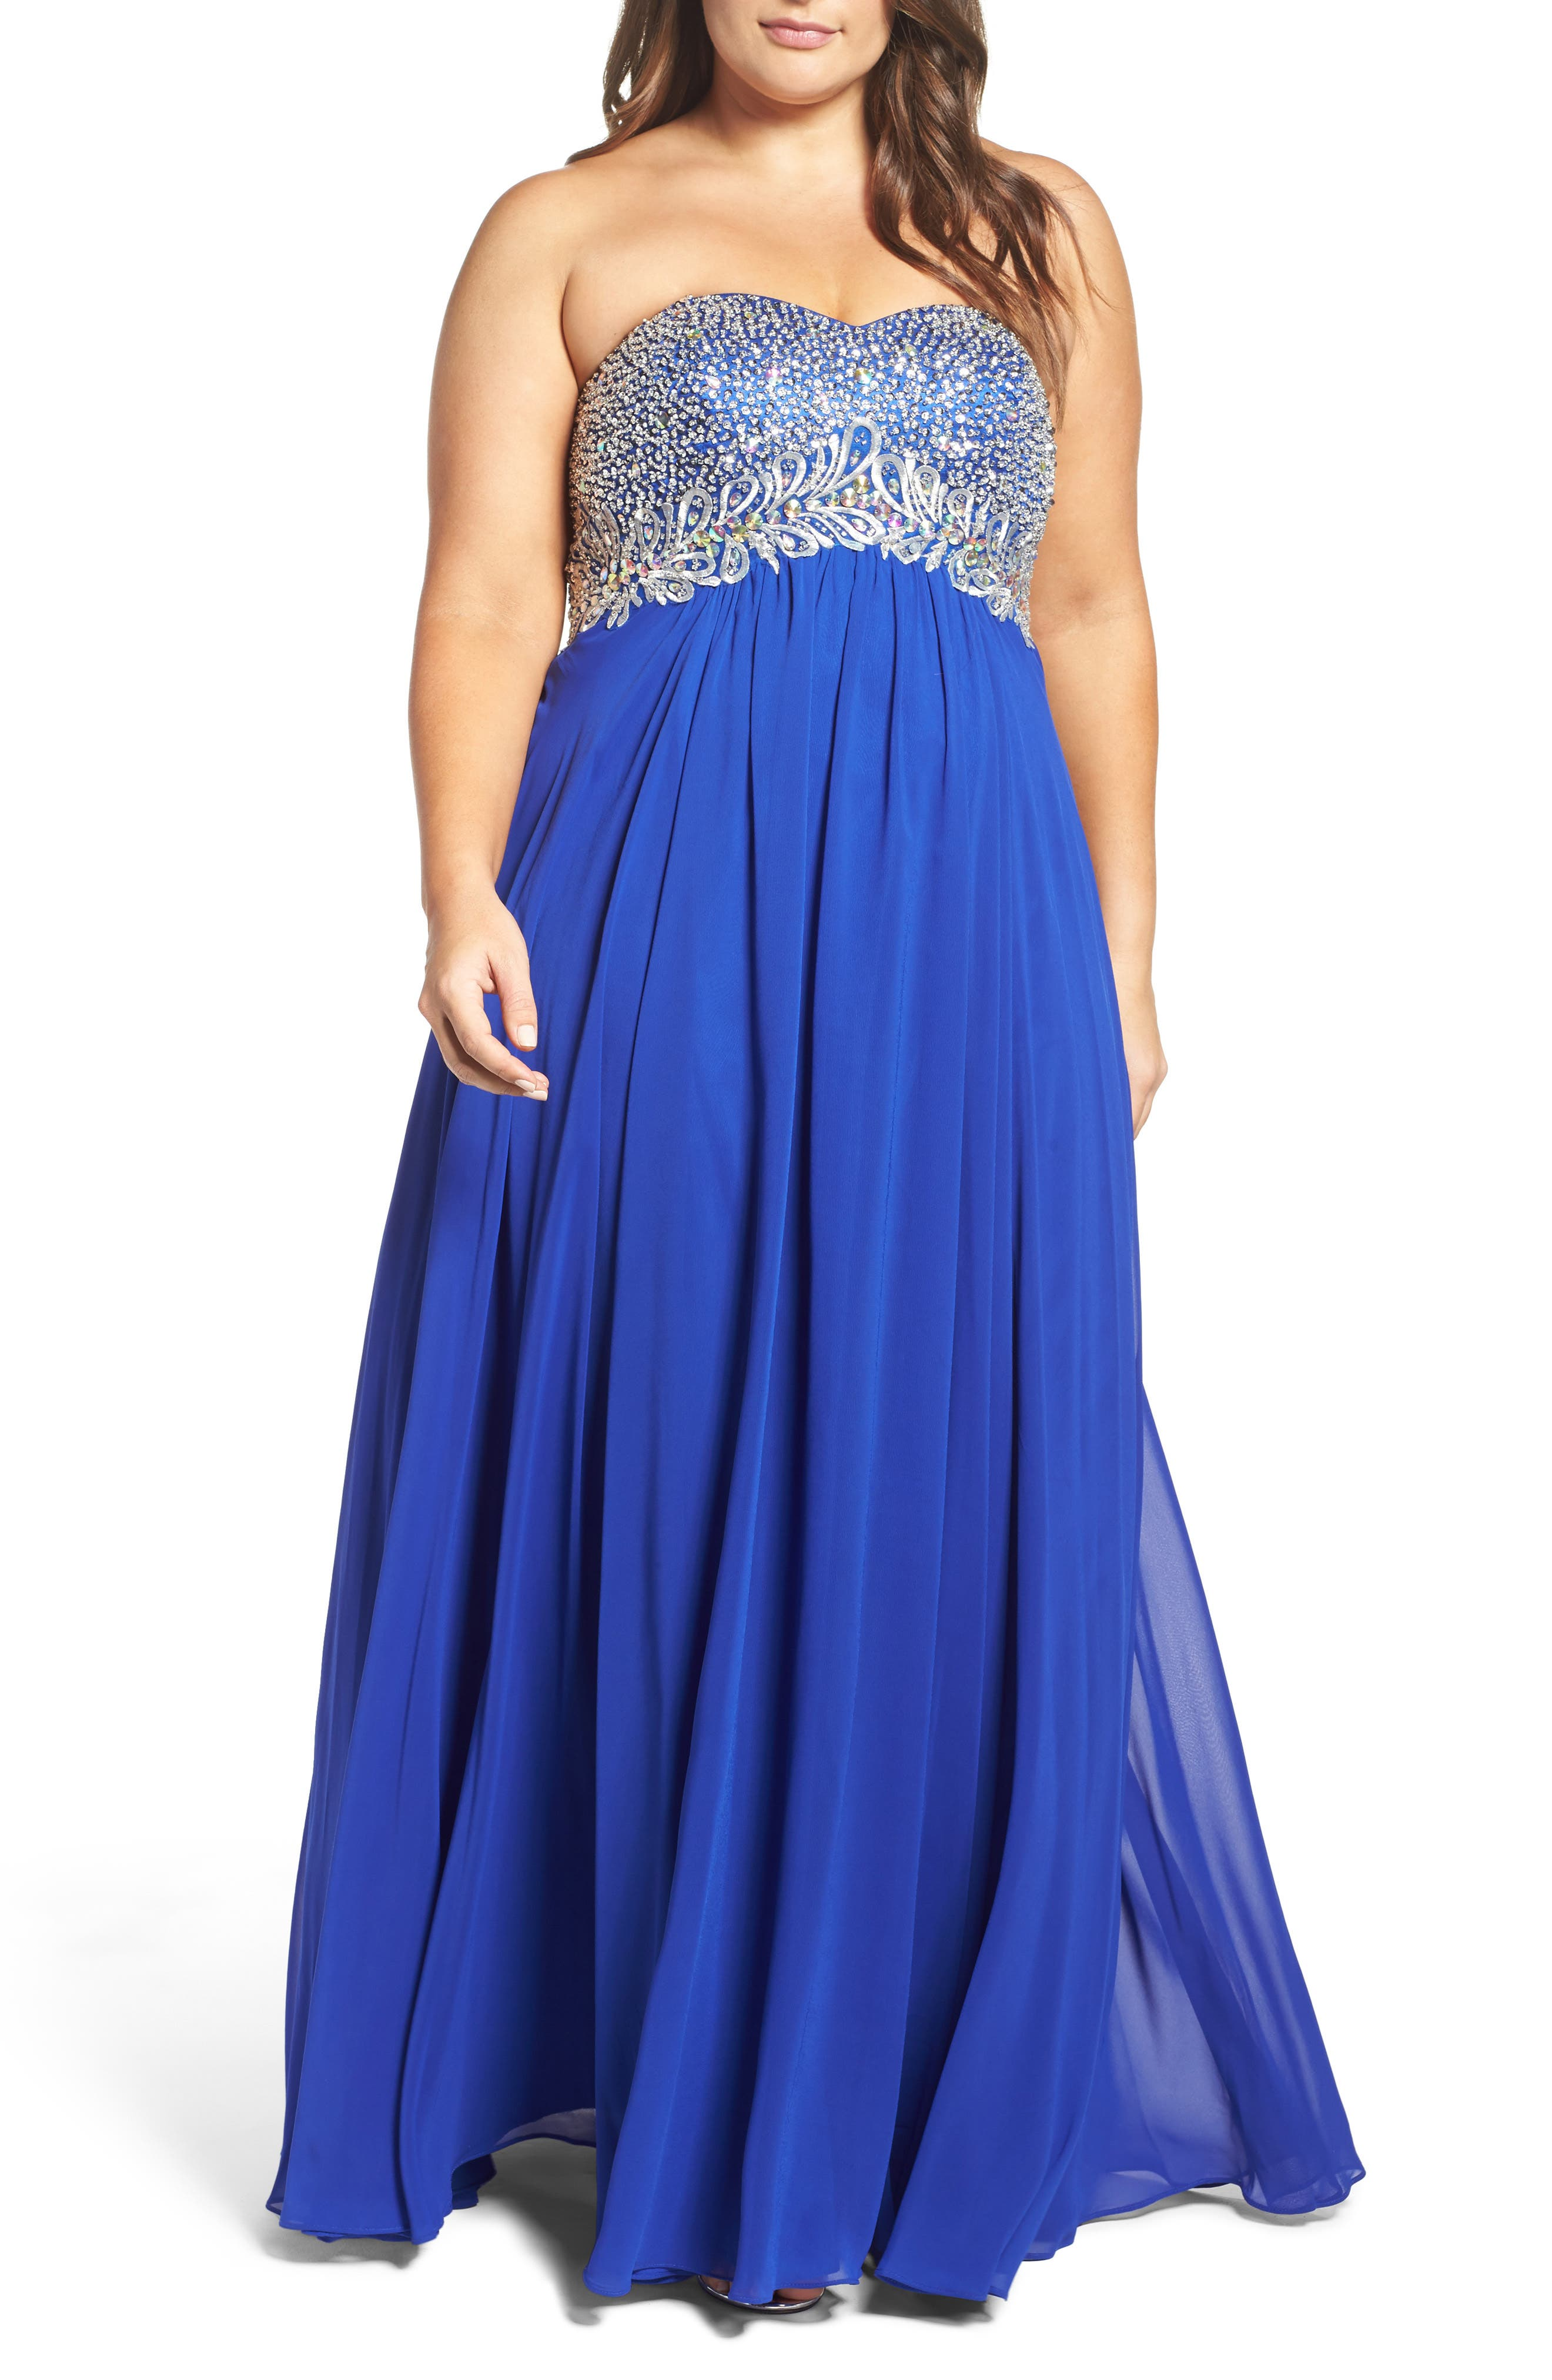 Embellished Strapless Gown,                             Main thumbnail 1, color,                             432